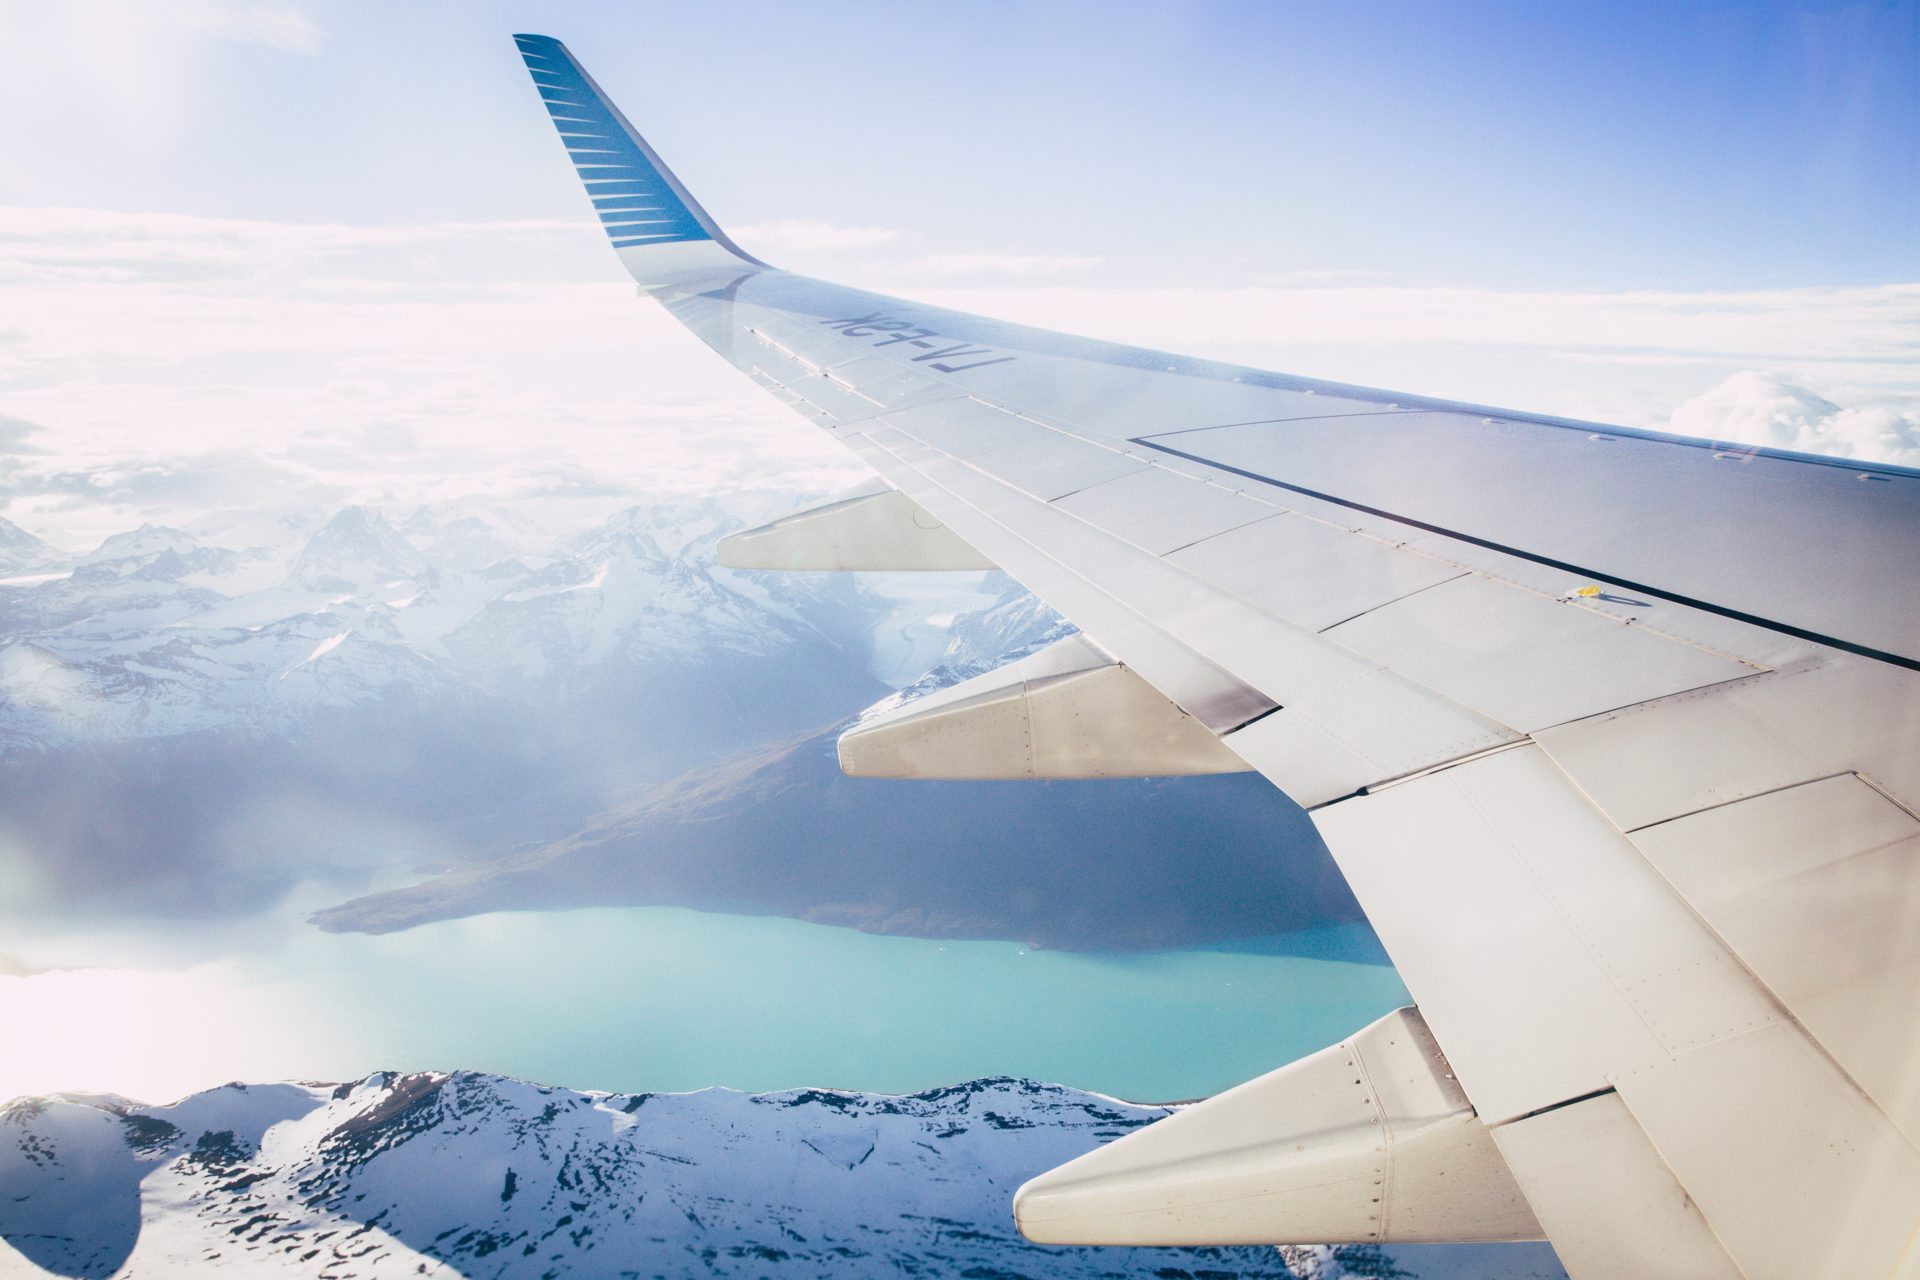 wing of plane over snow capped mountains and lake